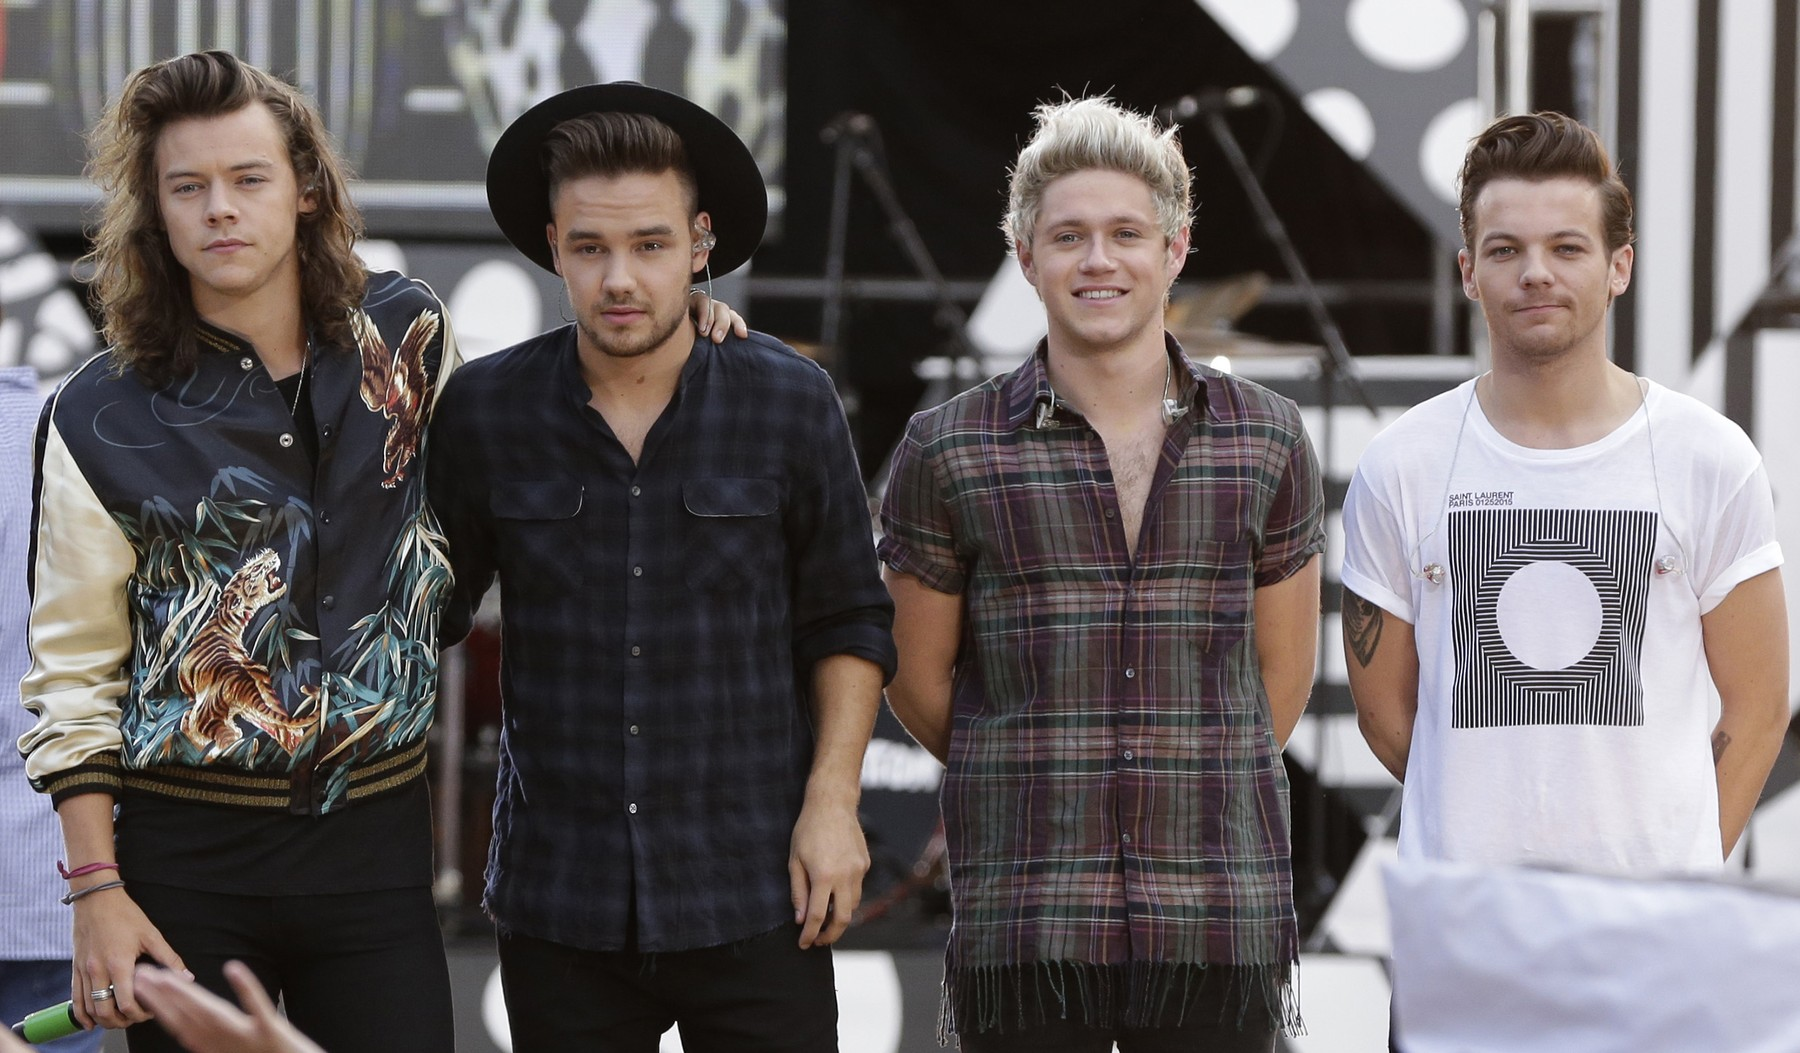 NEW YORK, NY - AUGUST 04: Harry Styles, Liam Payne, Niall Horan and Louis Tomlinson of One Direction pose onstage during ABC's 'Good Morning America' at Rumsey Playfield, Central Park on August 4, 2015 in New York City...People:  Harry Styles, Liam Payne, Niall Horan and Louis Tomlinson., Image: 410891544, License: Rights-managed, Restrictions: , Model Release: no, Credit line: SMG / Zuma Press / Profimedia